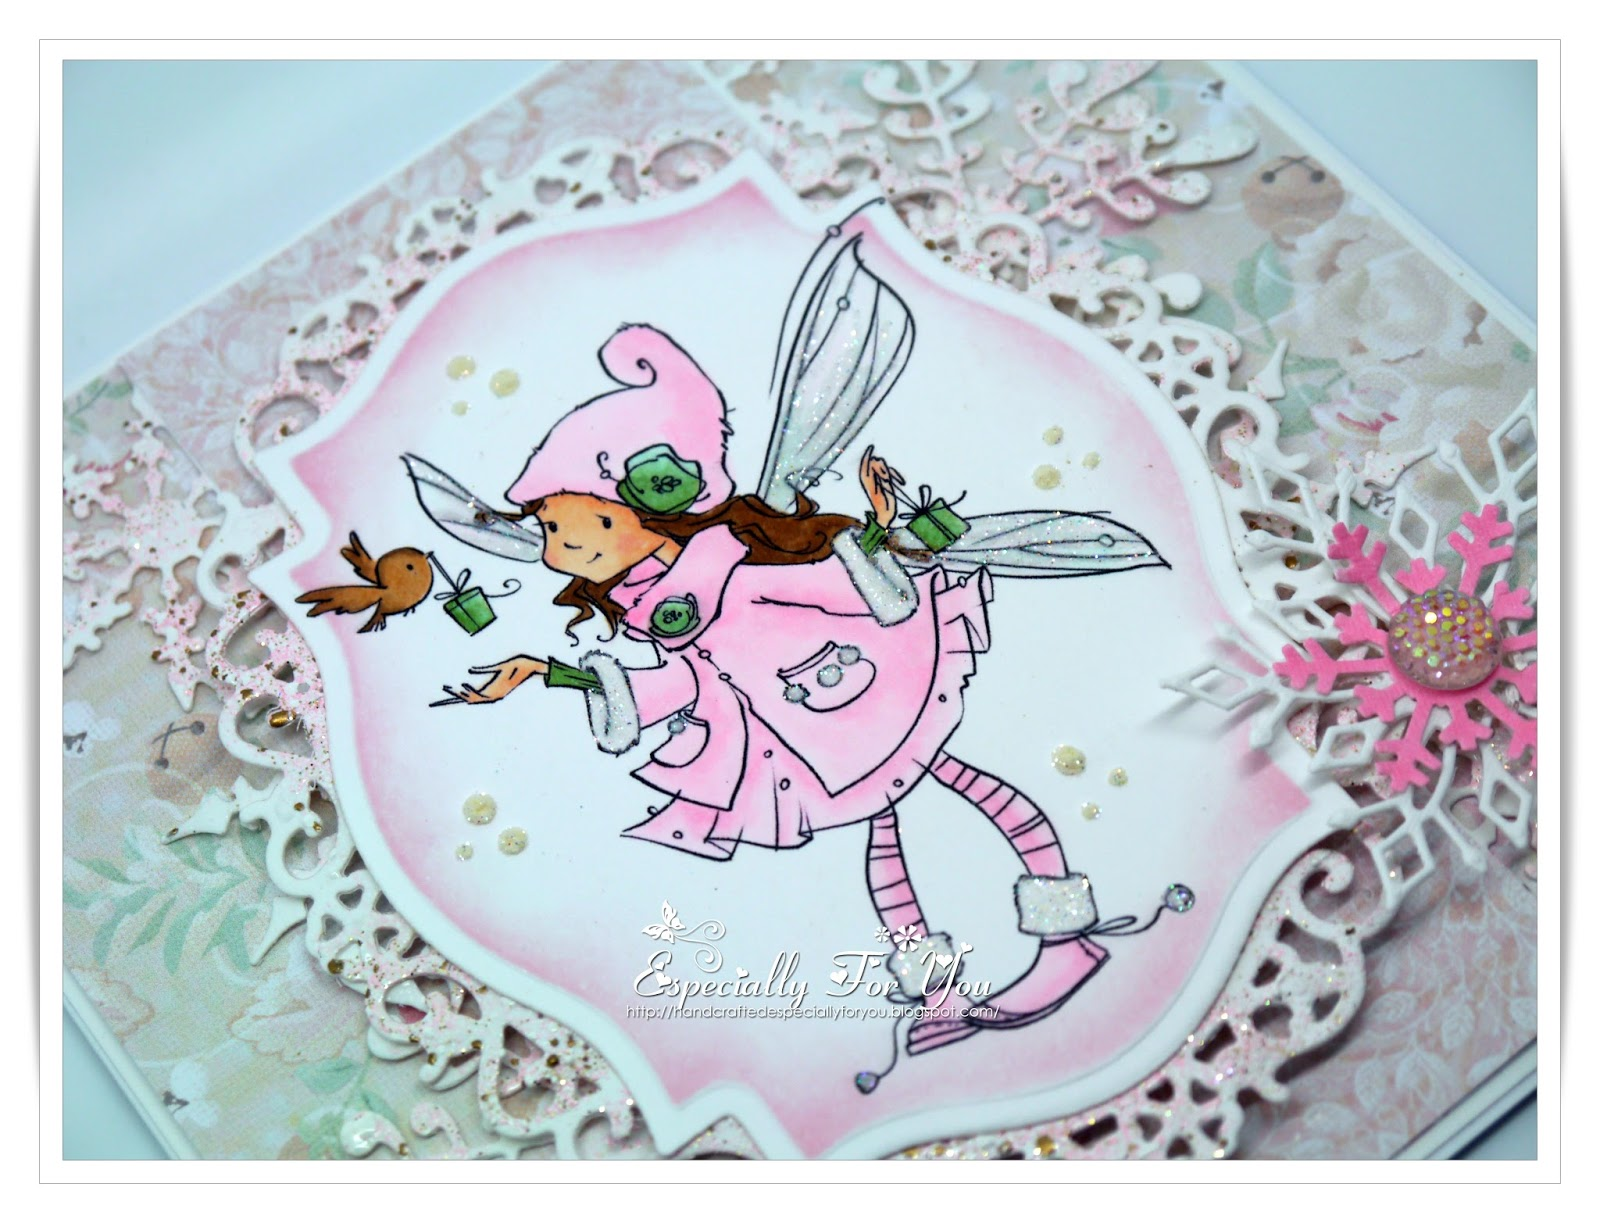 Especially For You: Shabby Chic or Vintage at In the Pink ...